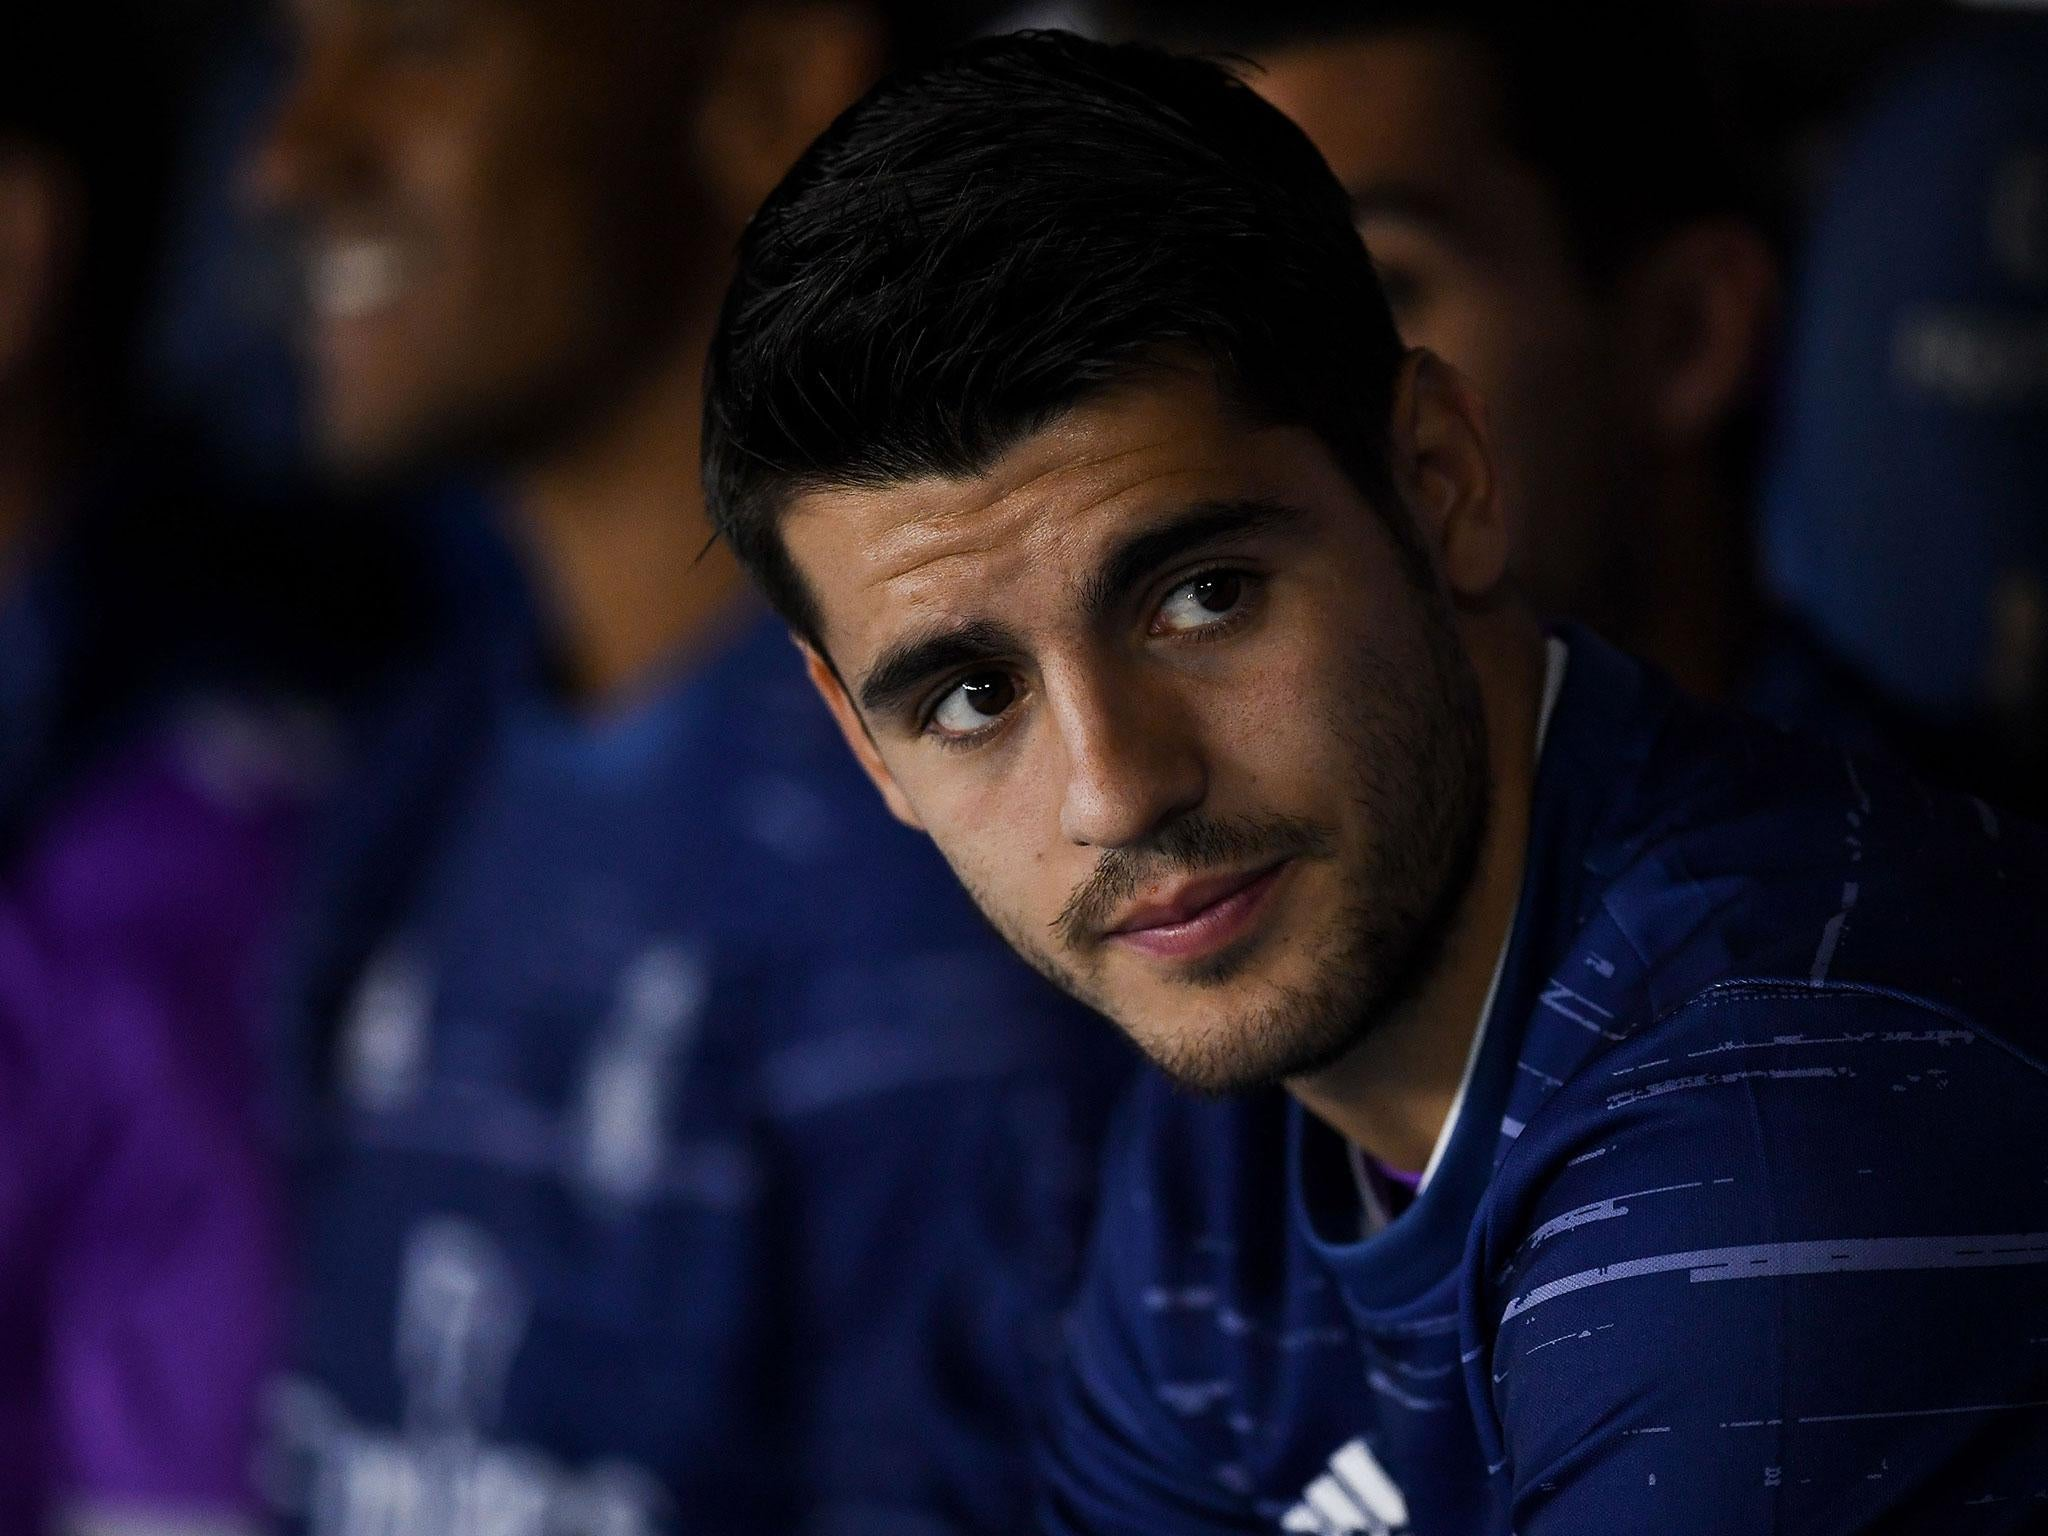 Chelsea are ting Alvaro Morata at the perfect time he s a